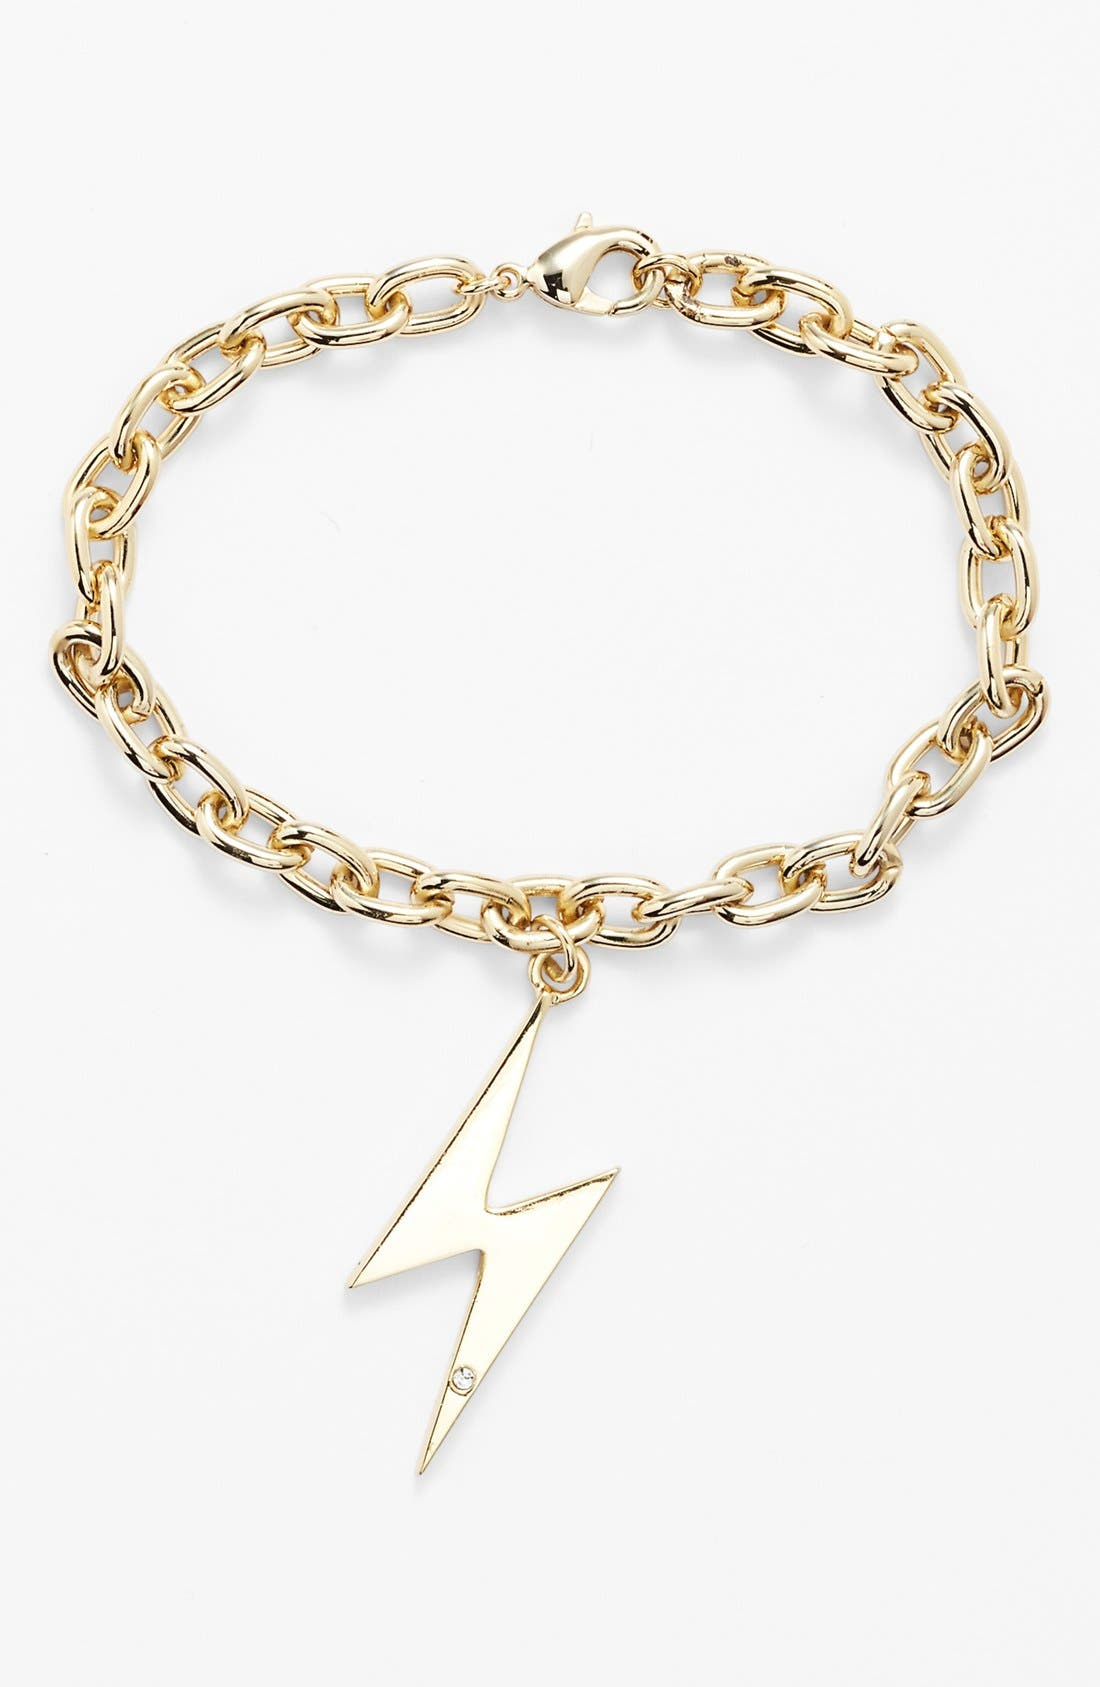 Main Image - Ariella Collection Lightning Bolt Charm Bracelet